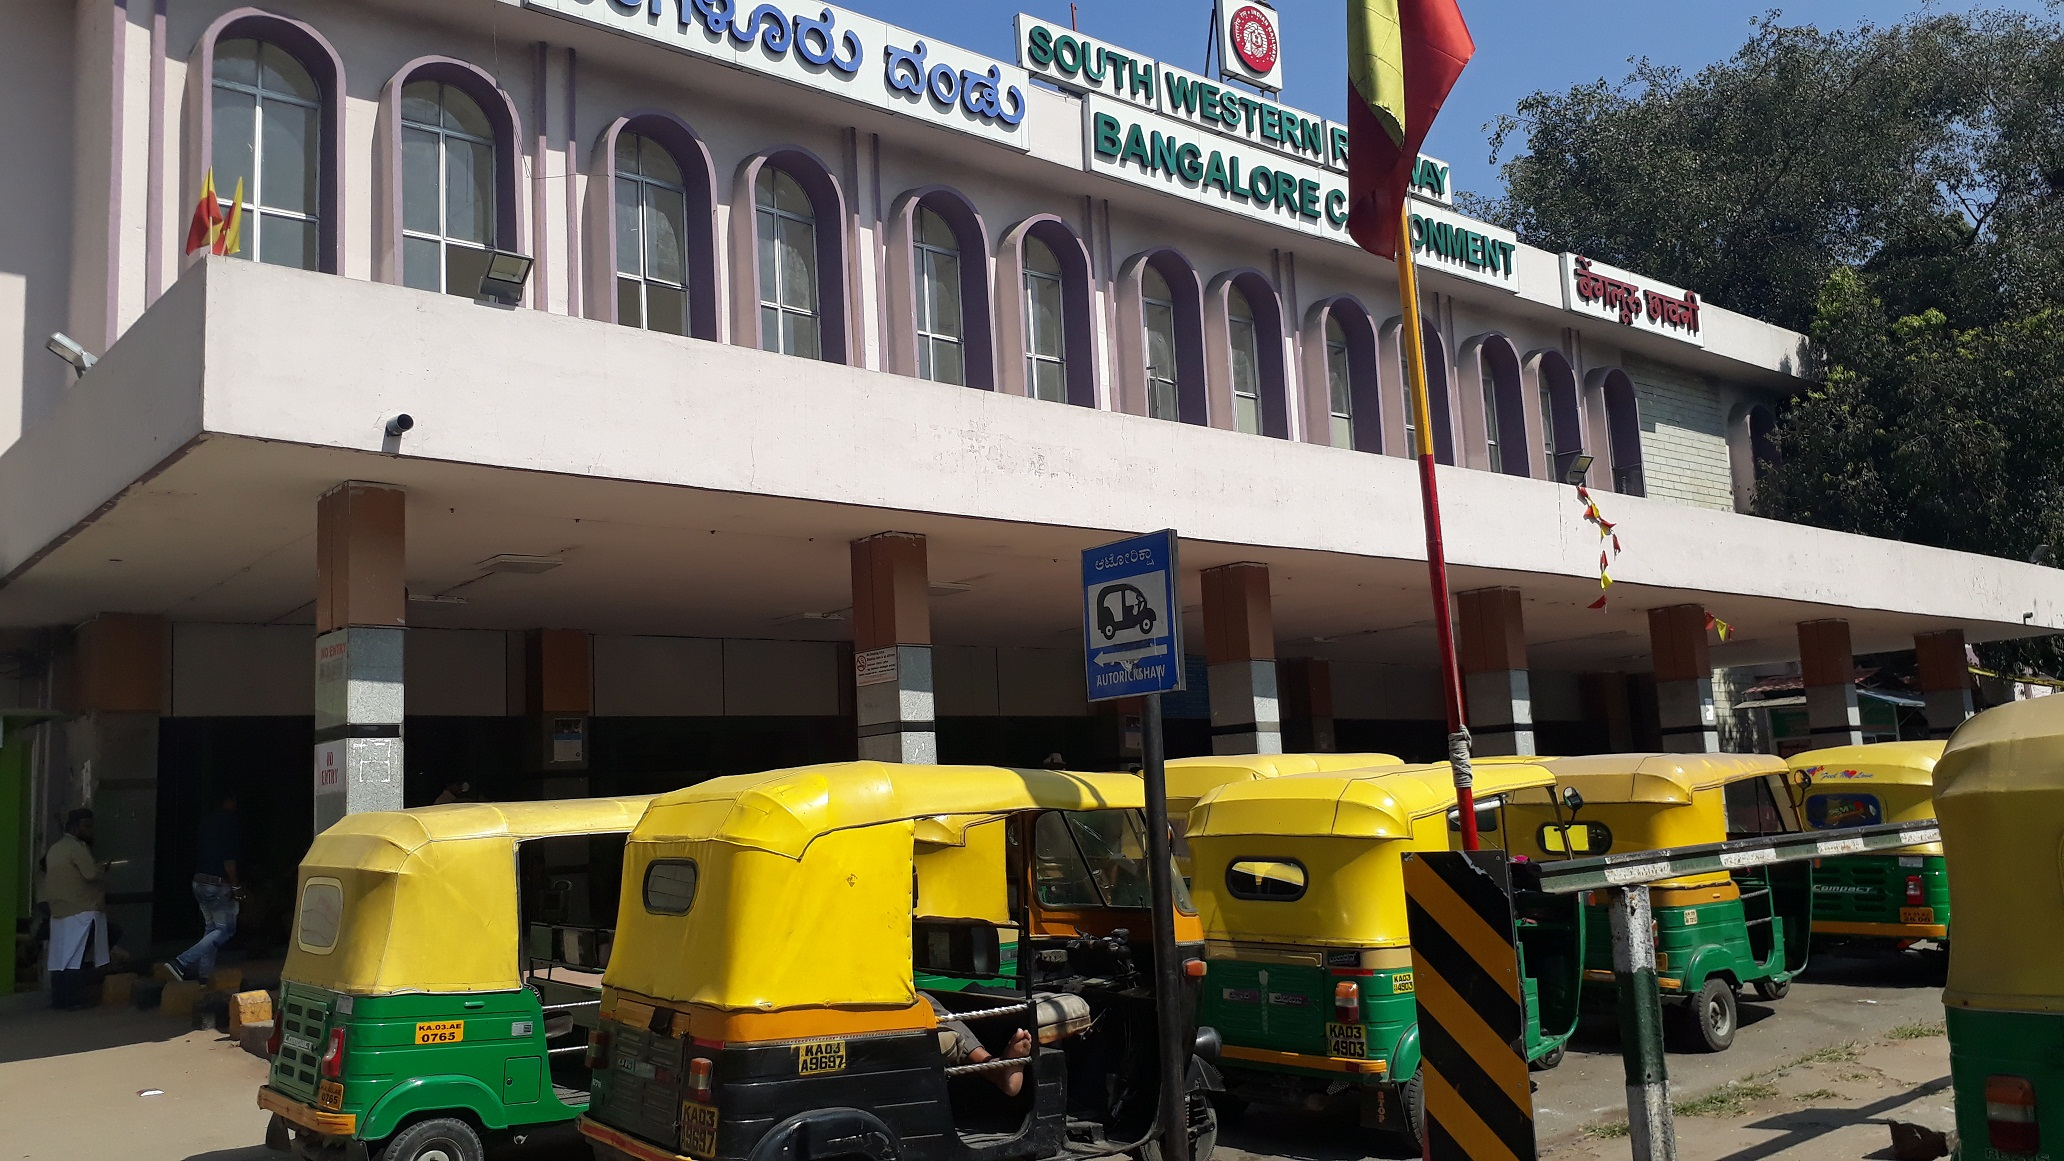 Auto drivers waiting for passengers outside the Cantonment railway station. Train passengers who arrived, and didn't have a smartphones to book cabs, were at the mercy of drivers who demanded exorbitant fares.